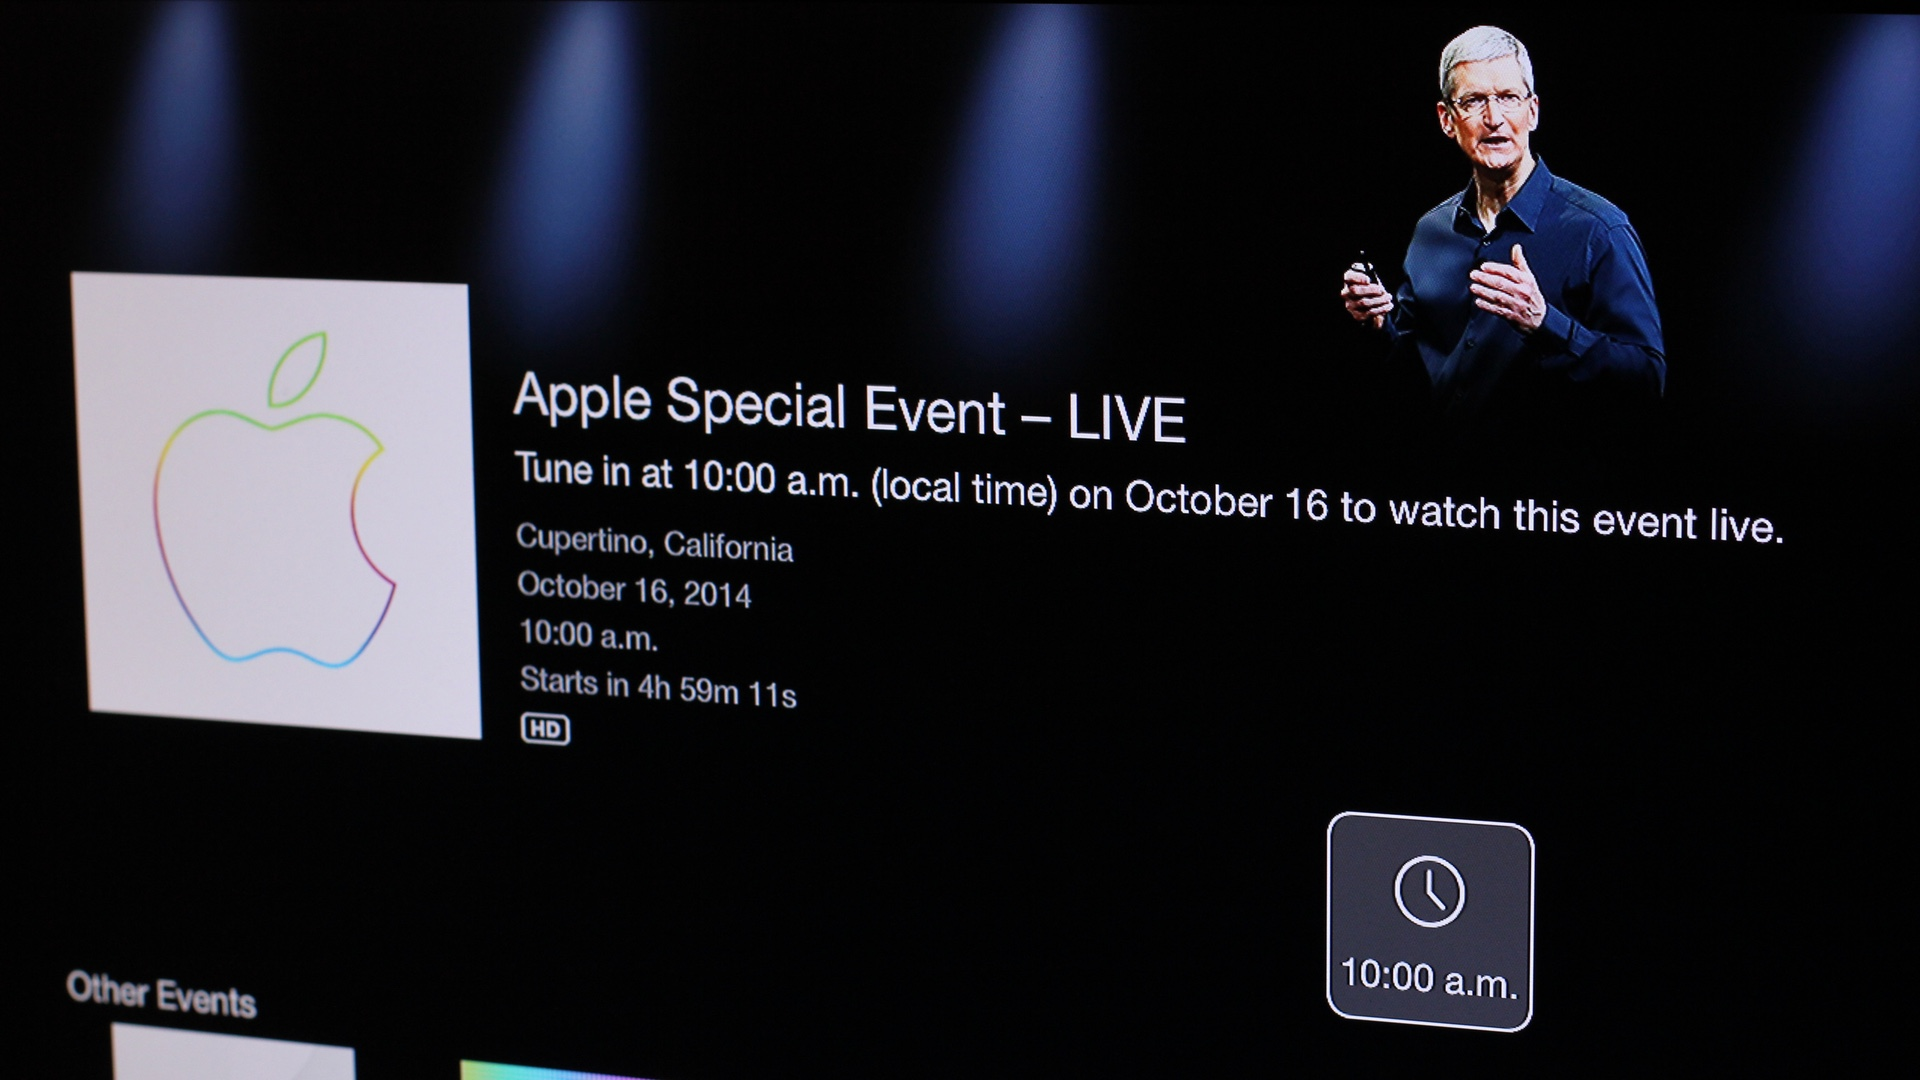 Apple Special Event October 16 2014